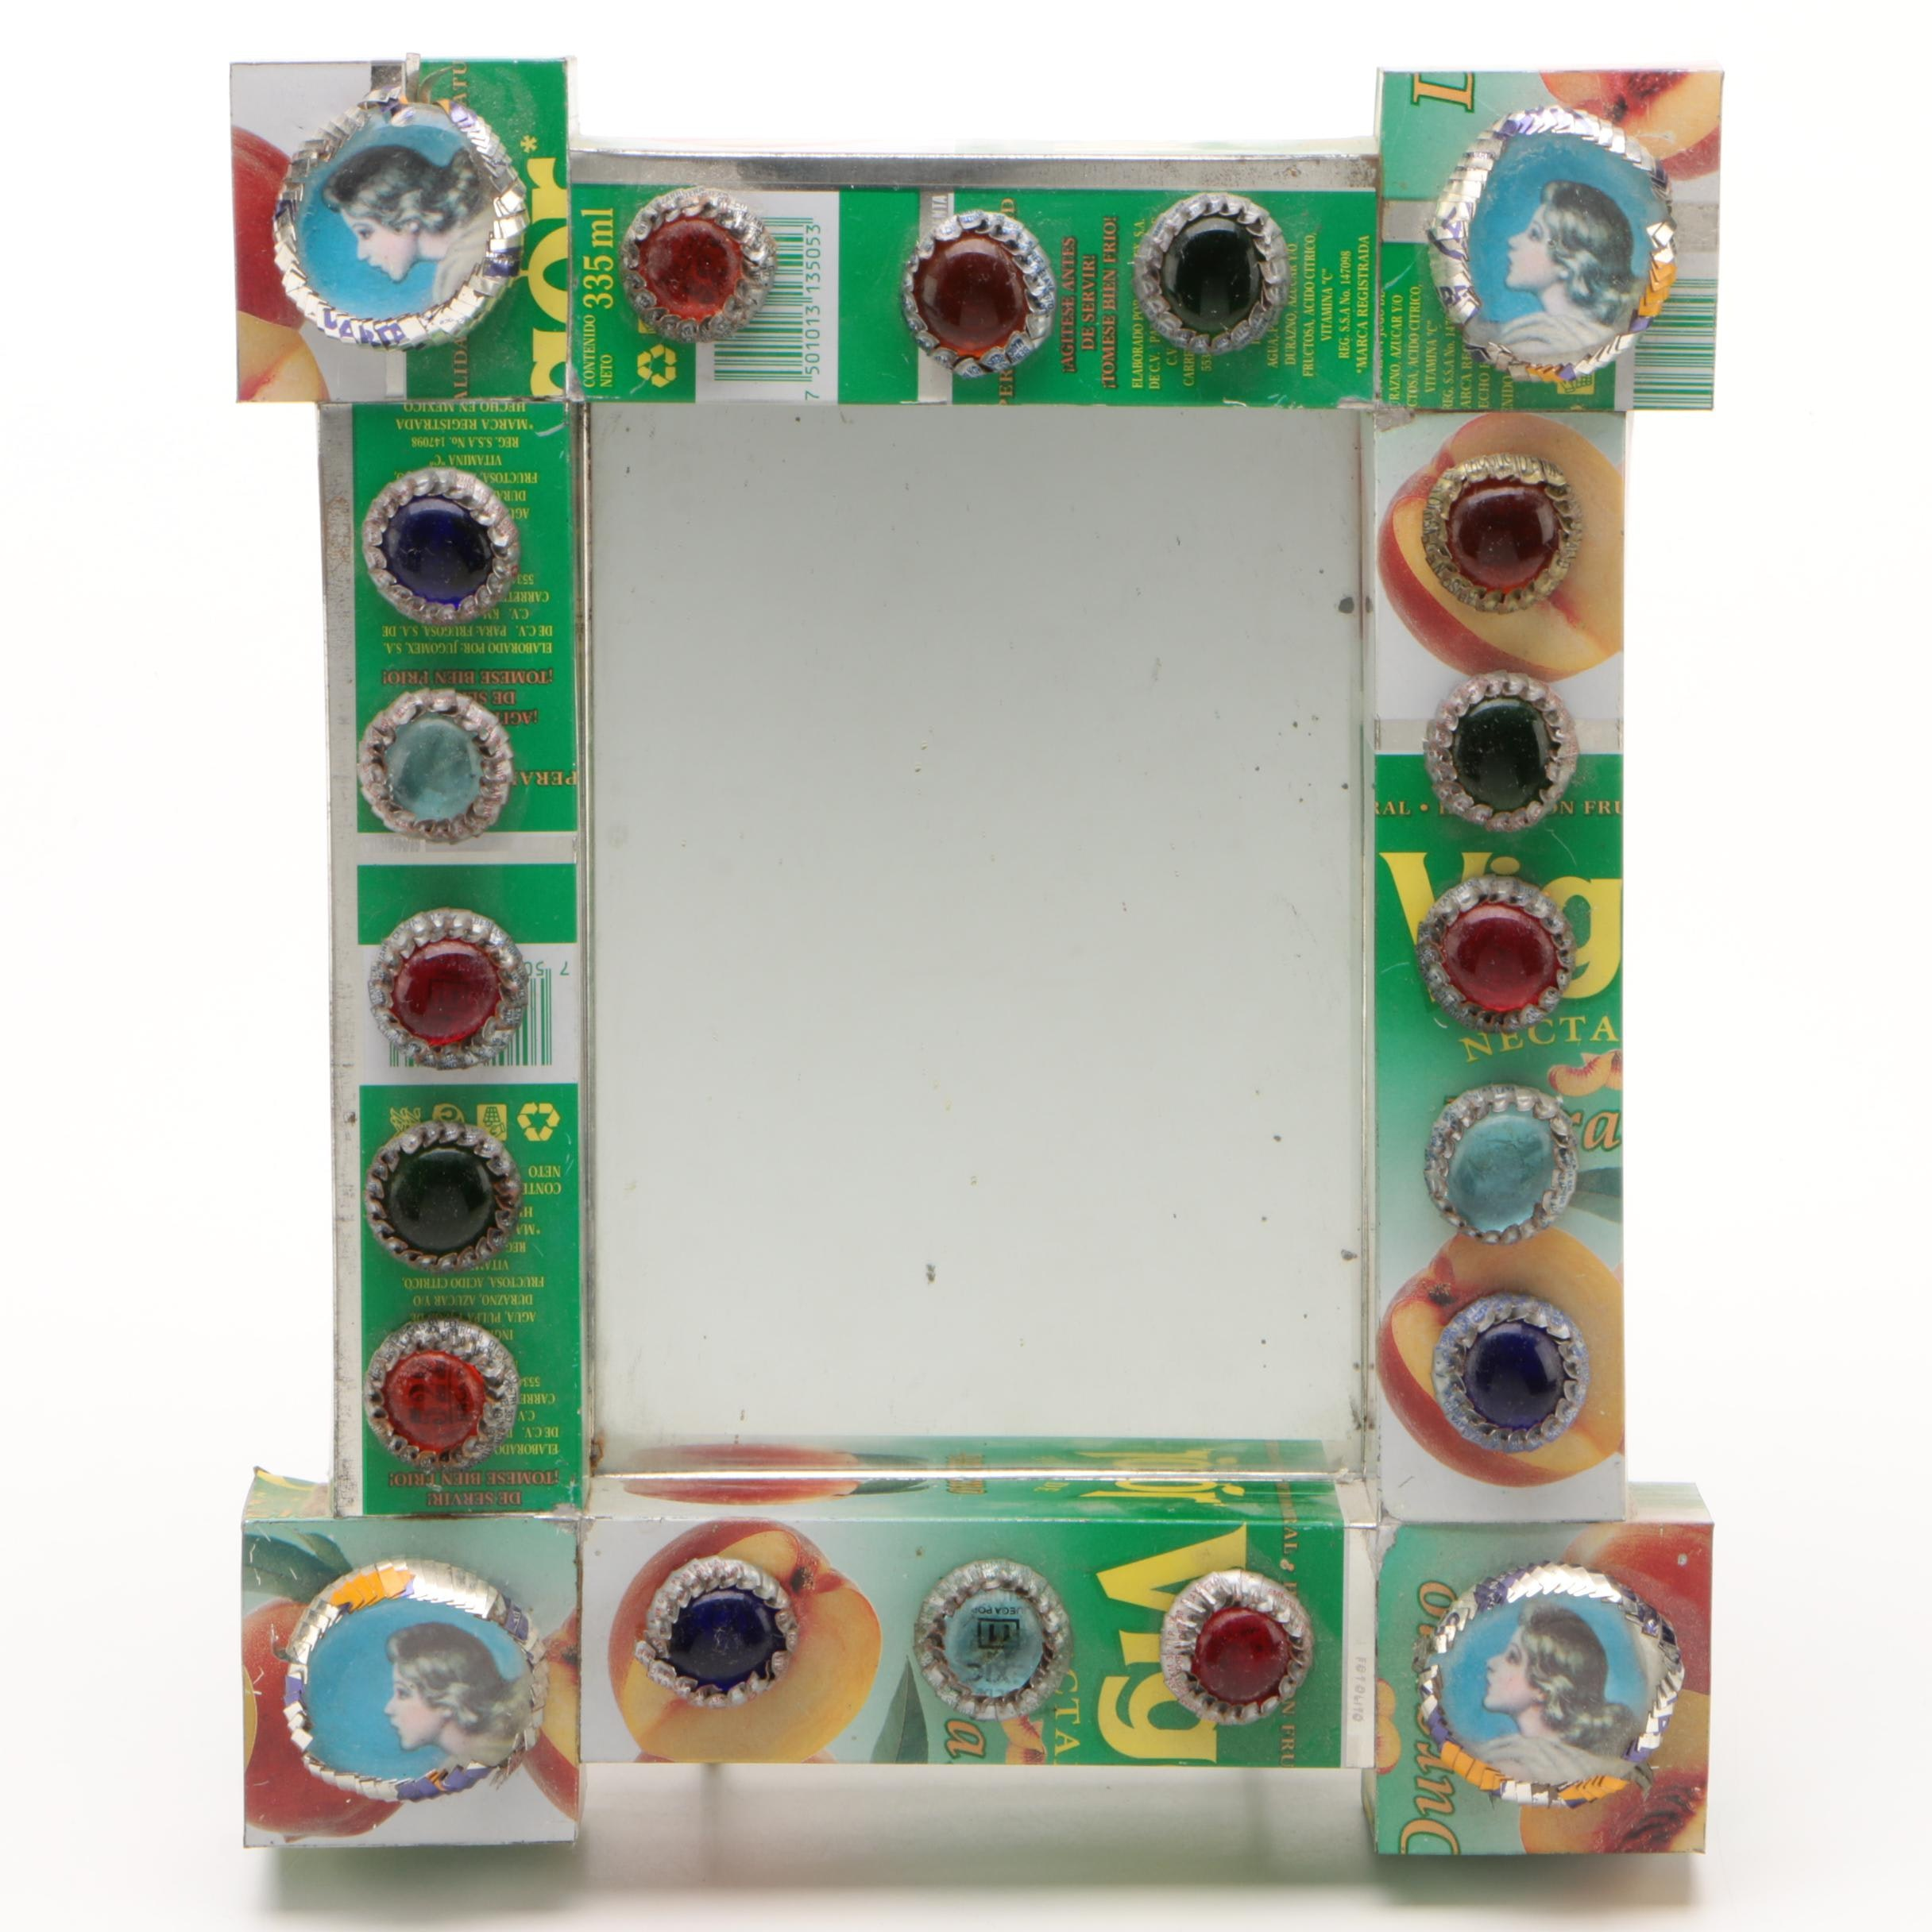 Mexican Vigor Peach Juice Can Frame Mirror with Bottle Cap Cabochons